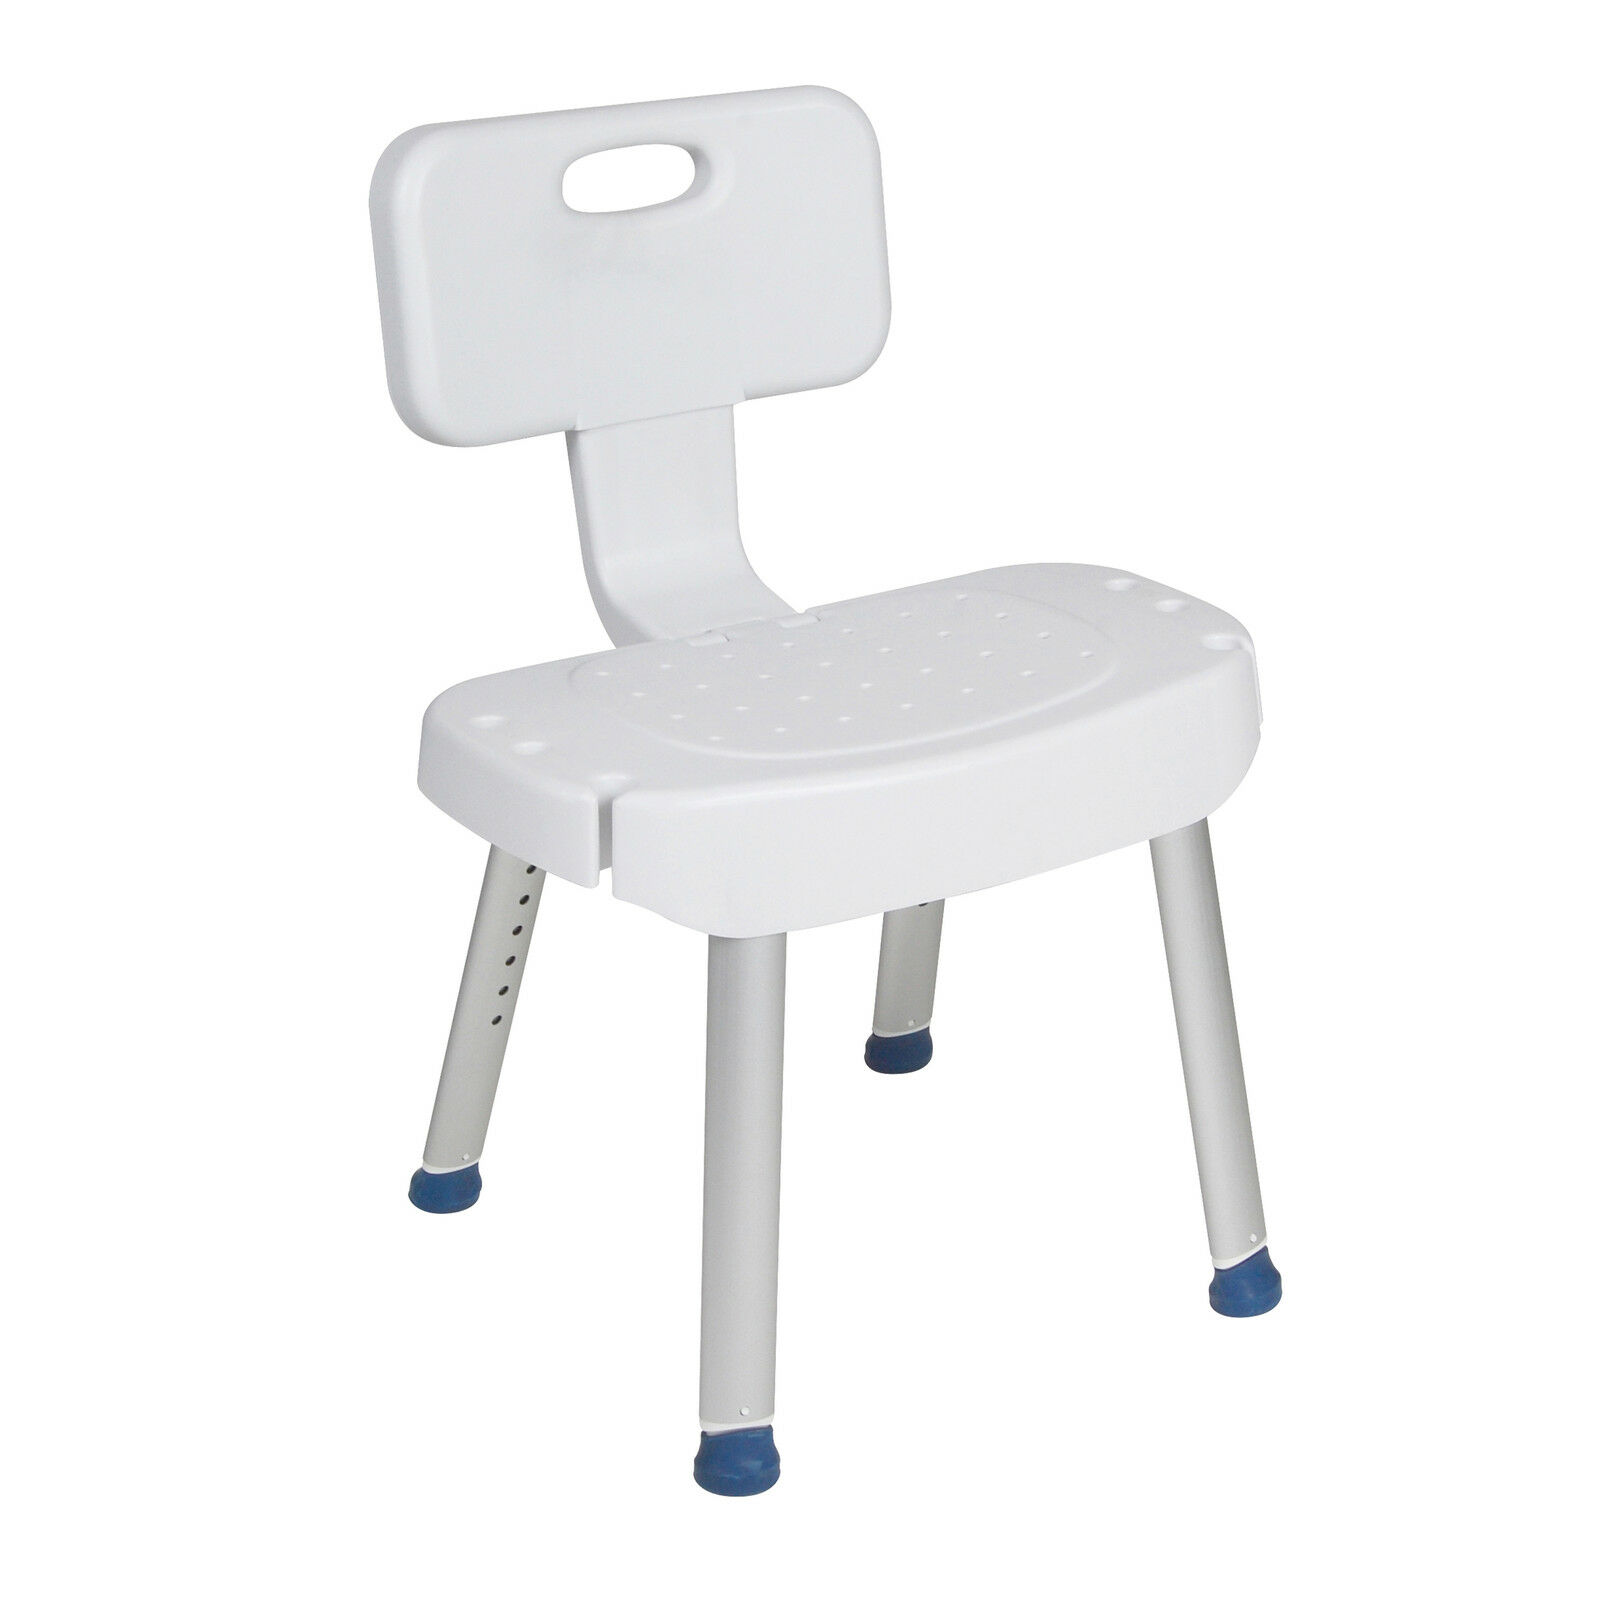 Drive Medical RTL Bathroom Safety Shower Chair With Folding